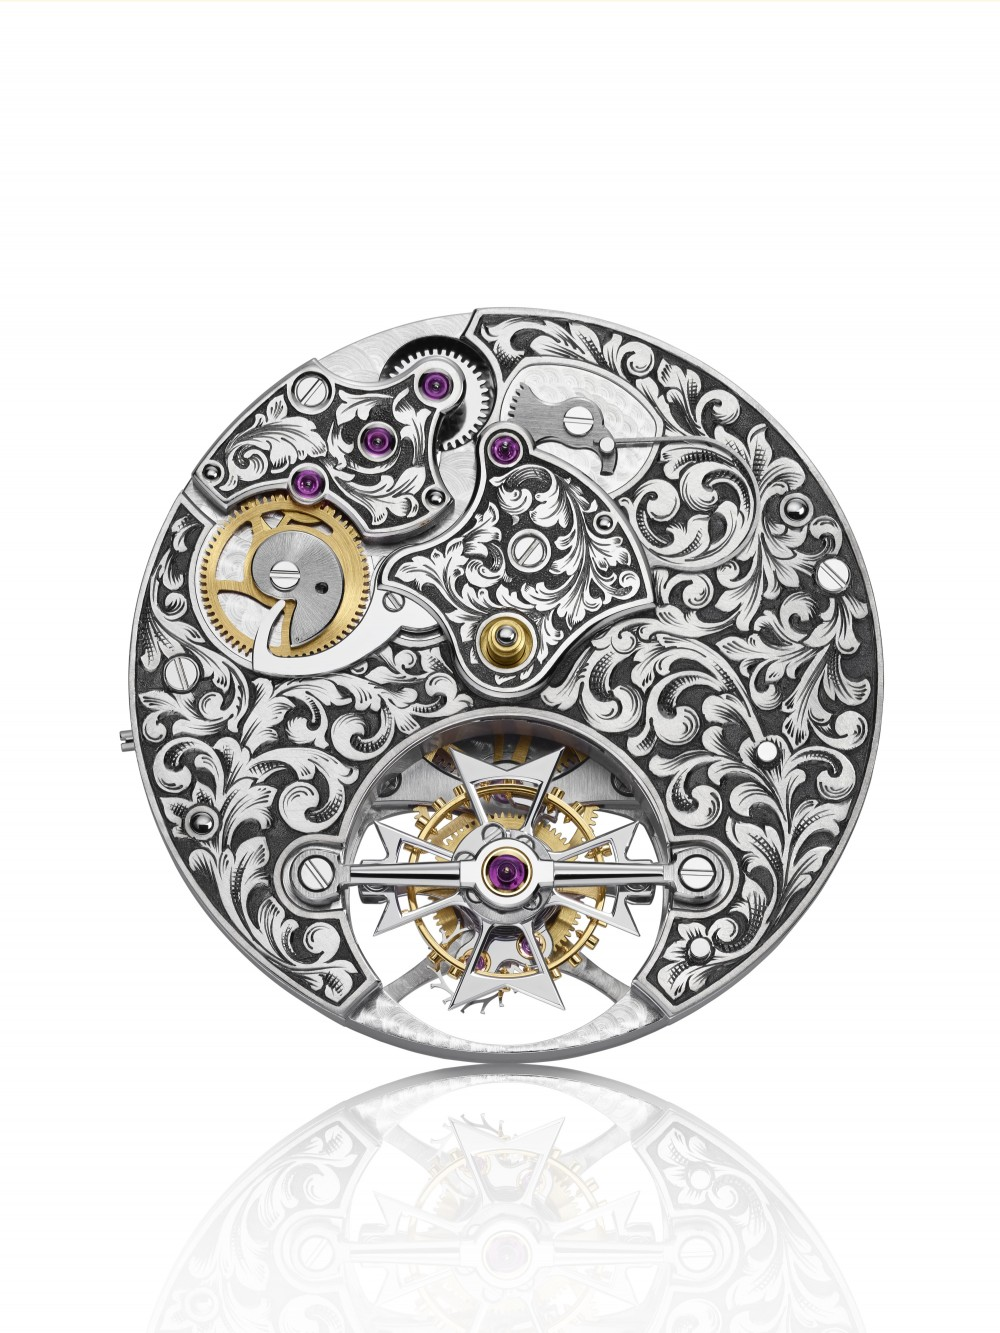 Hand-engraved Caliber 2260/1 of the Métiers d'Art collection by Vacheron Constantin